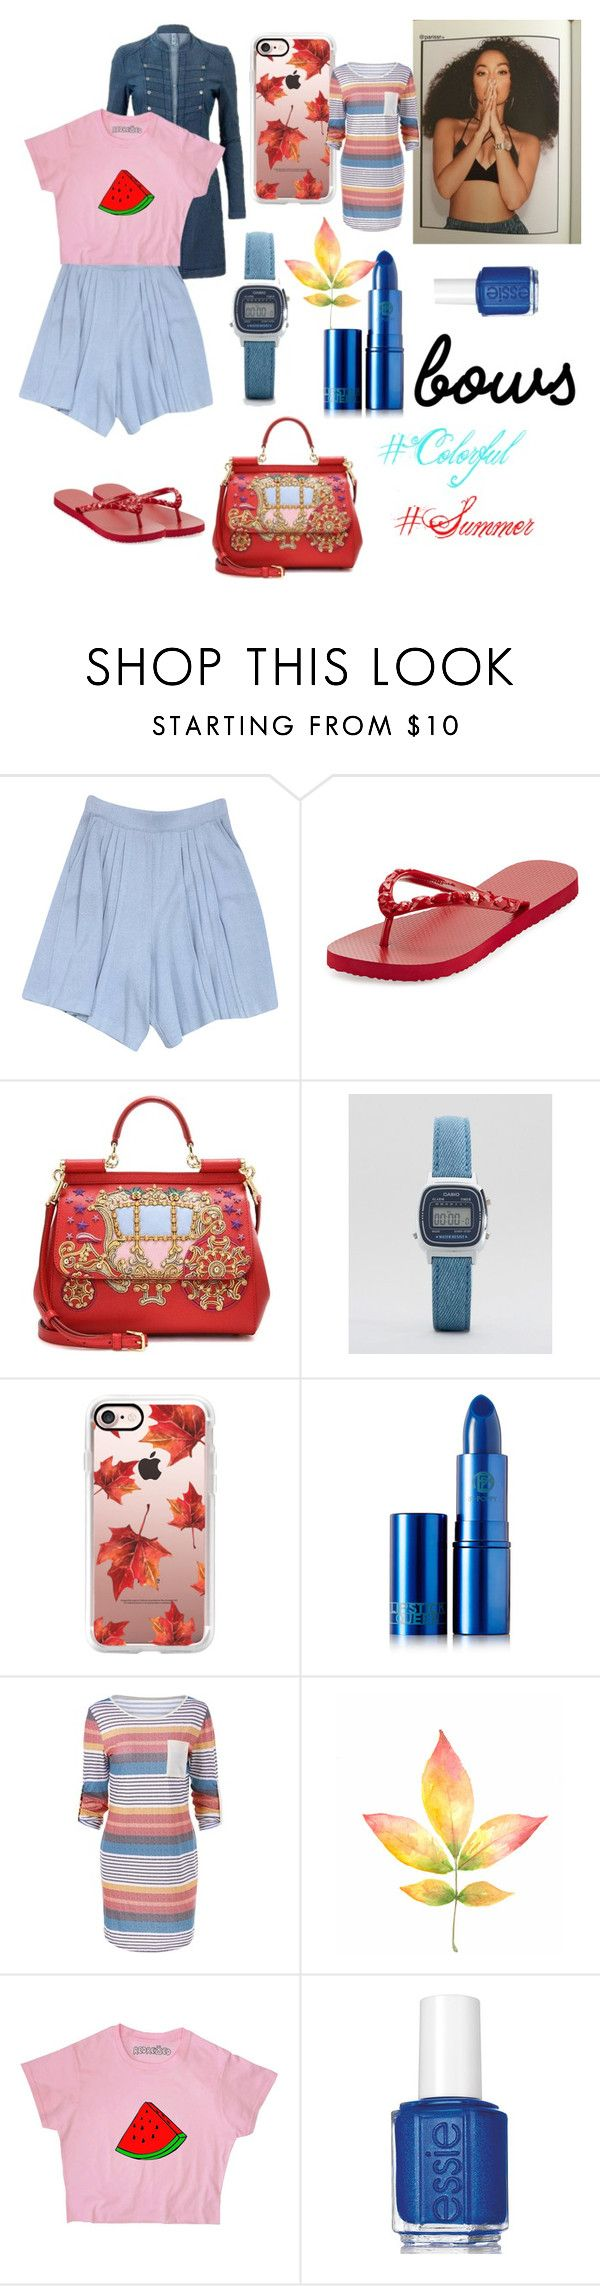 """""""Untitled #506"""" by alinaa191 ❤ liked on Polyvore featuring St. John, Tory Burch, Dolce&Gabbana, Casio, Casetify, Lipstick Queen and Essie"""